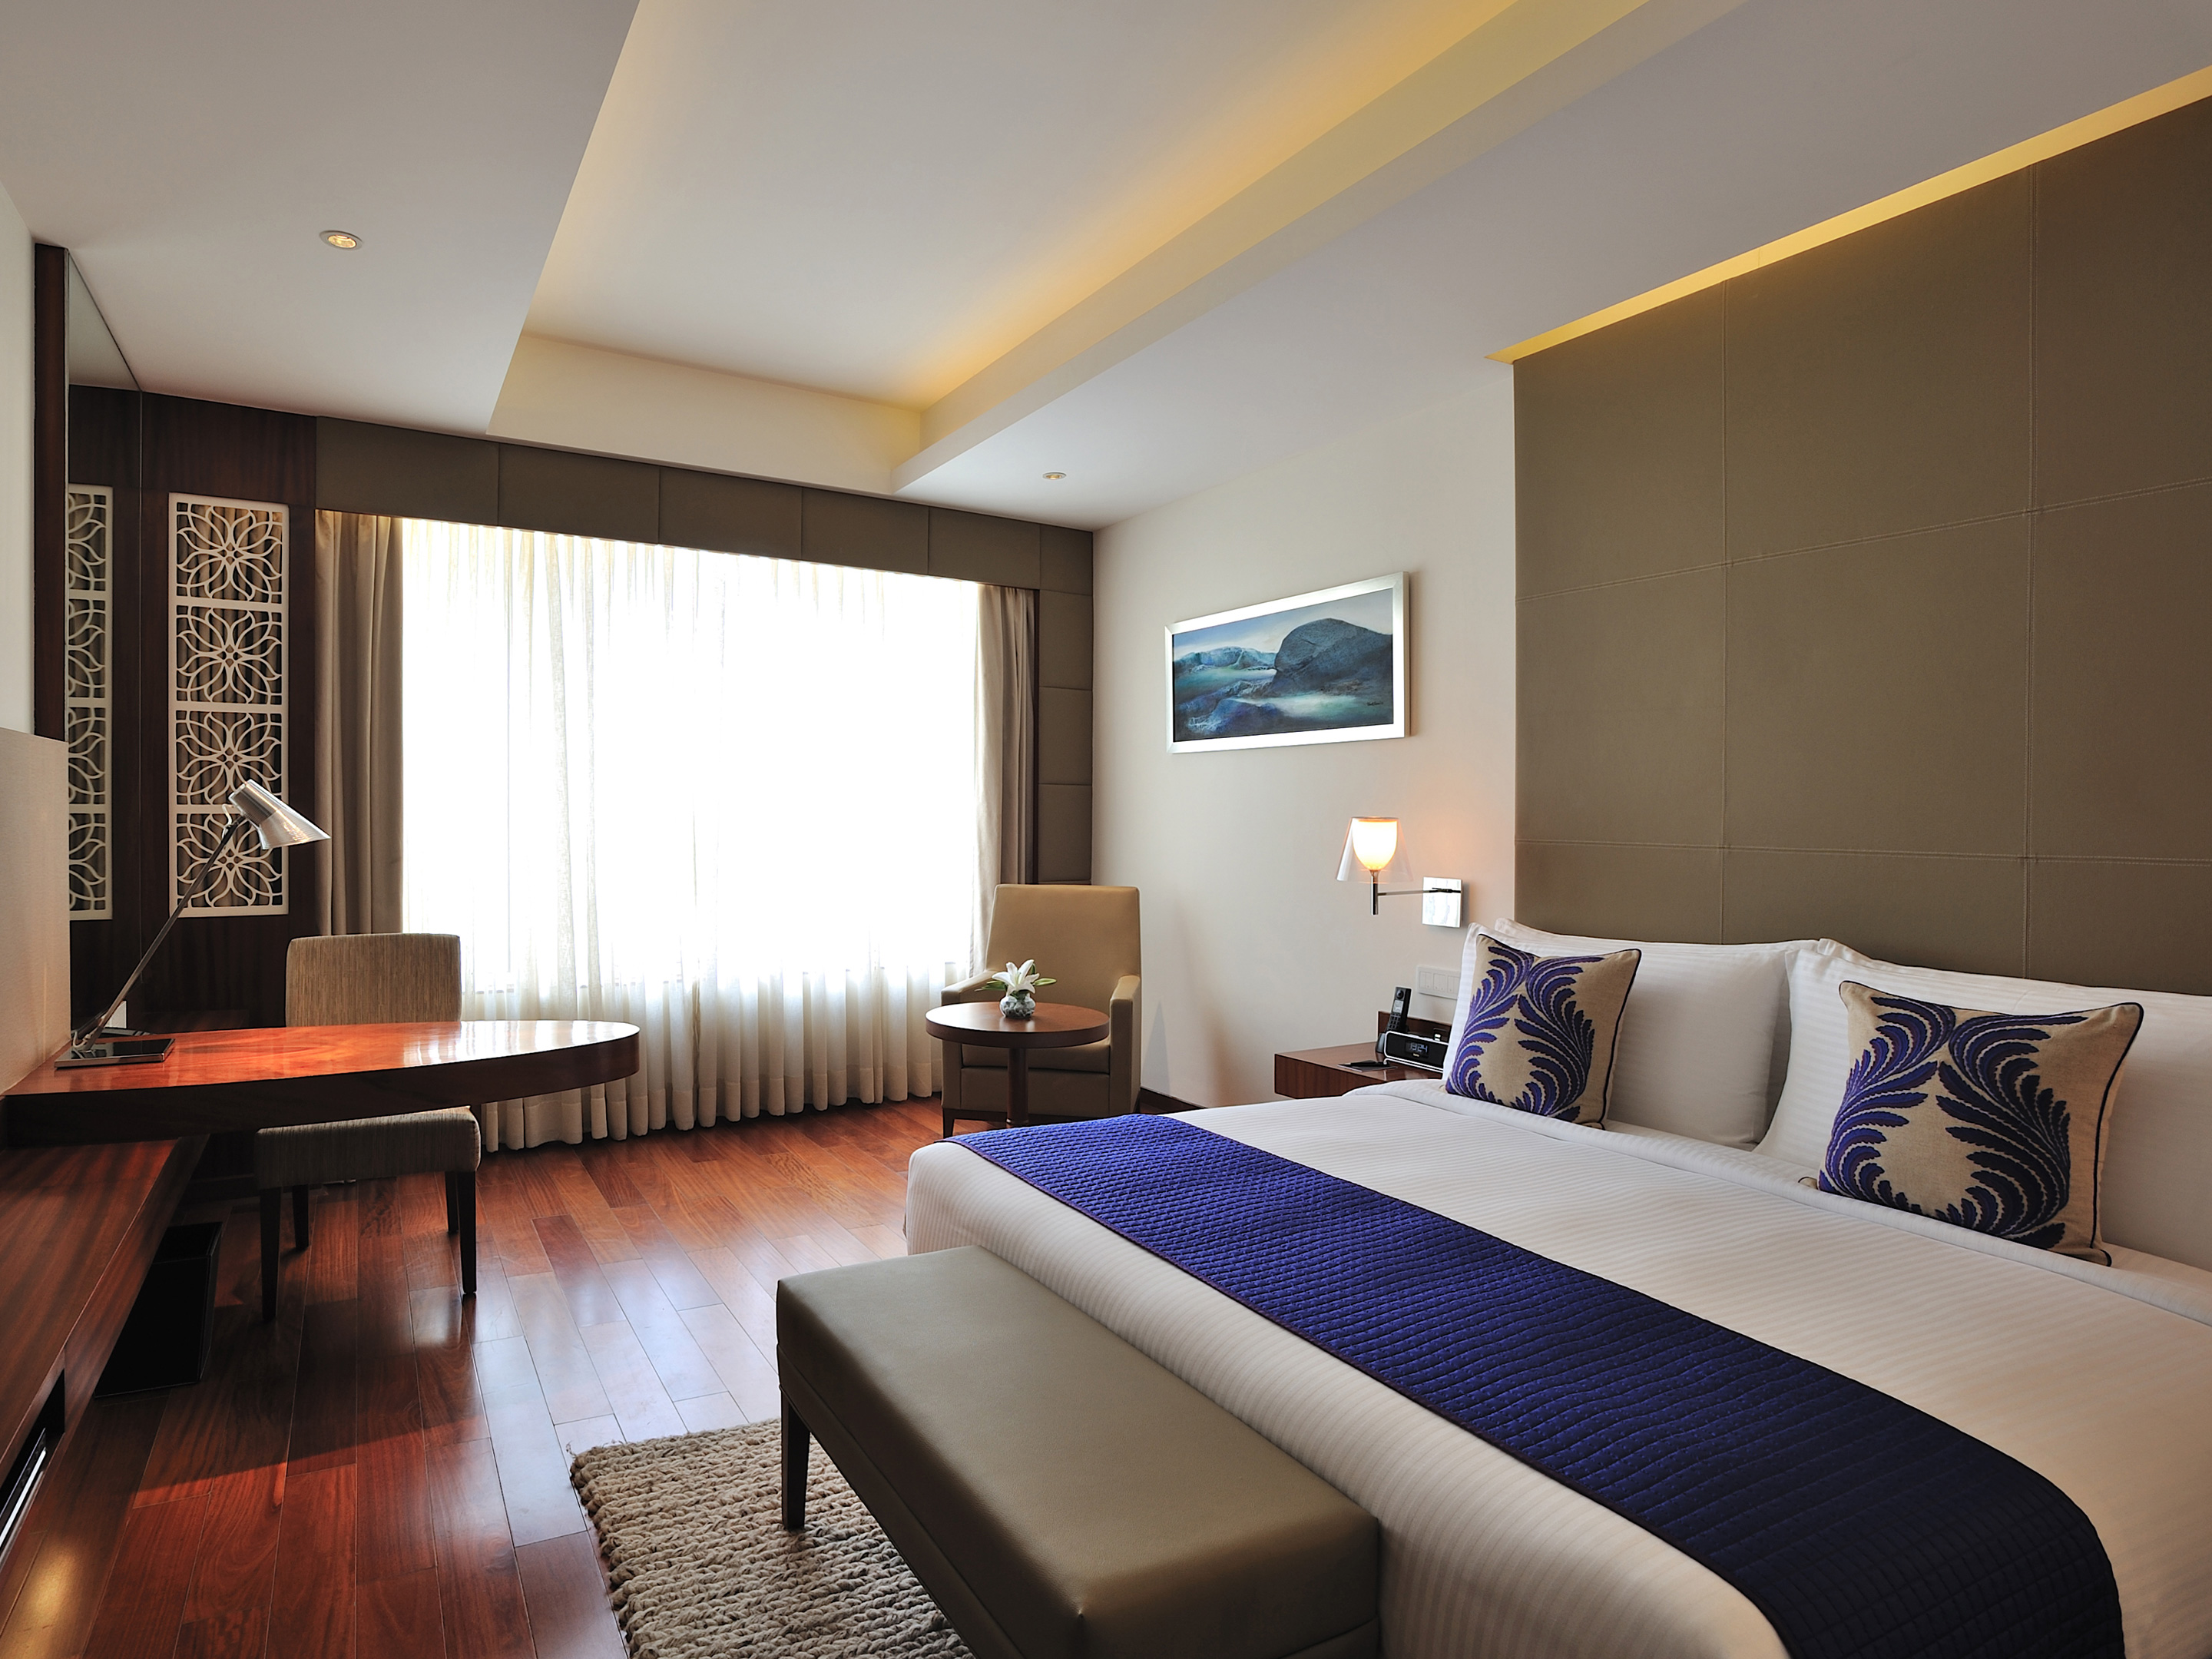 Rooms suites at anya in gurgaon india design hotels for 20 room hotel design